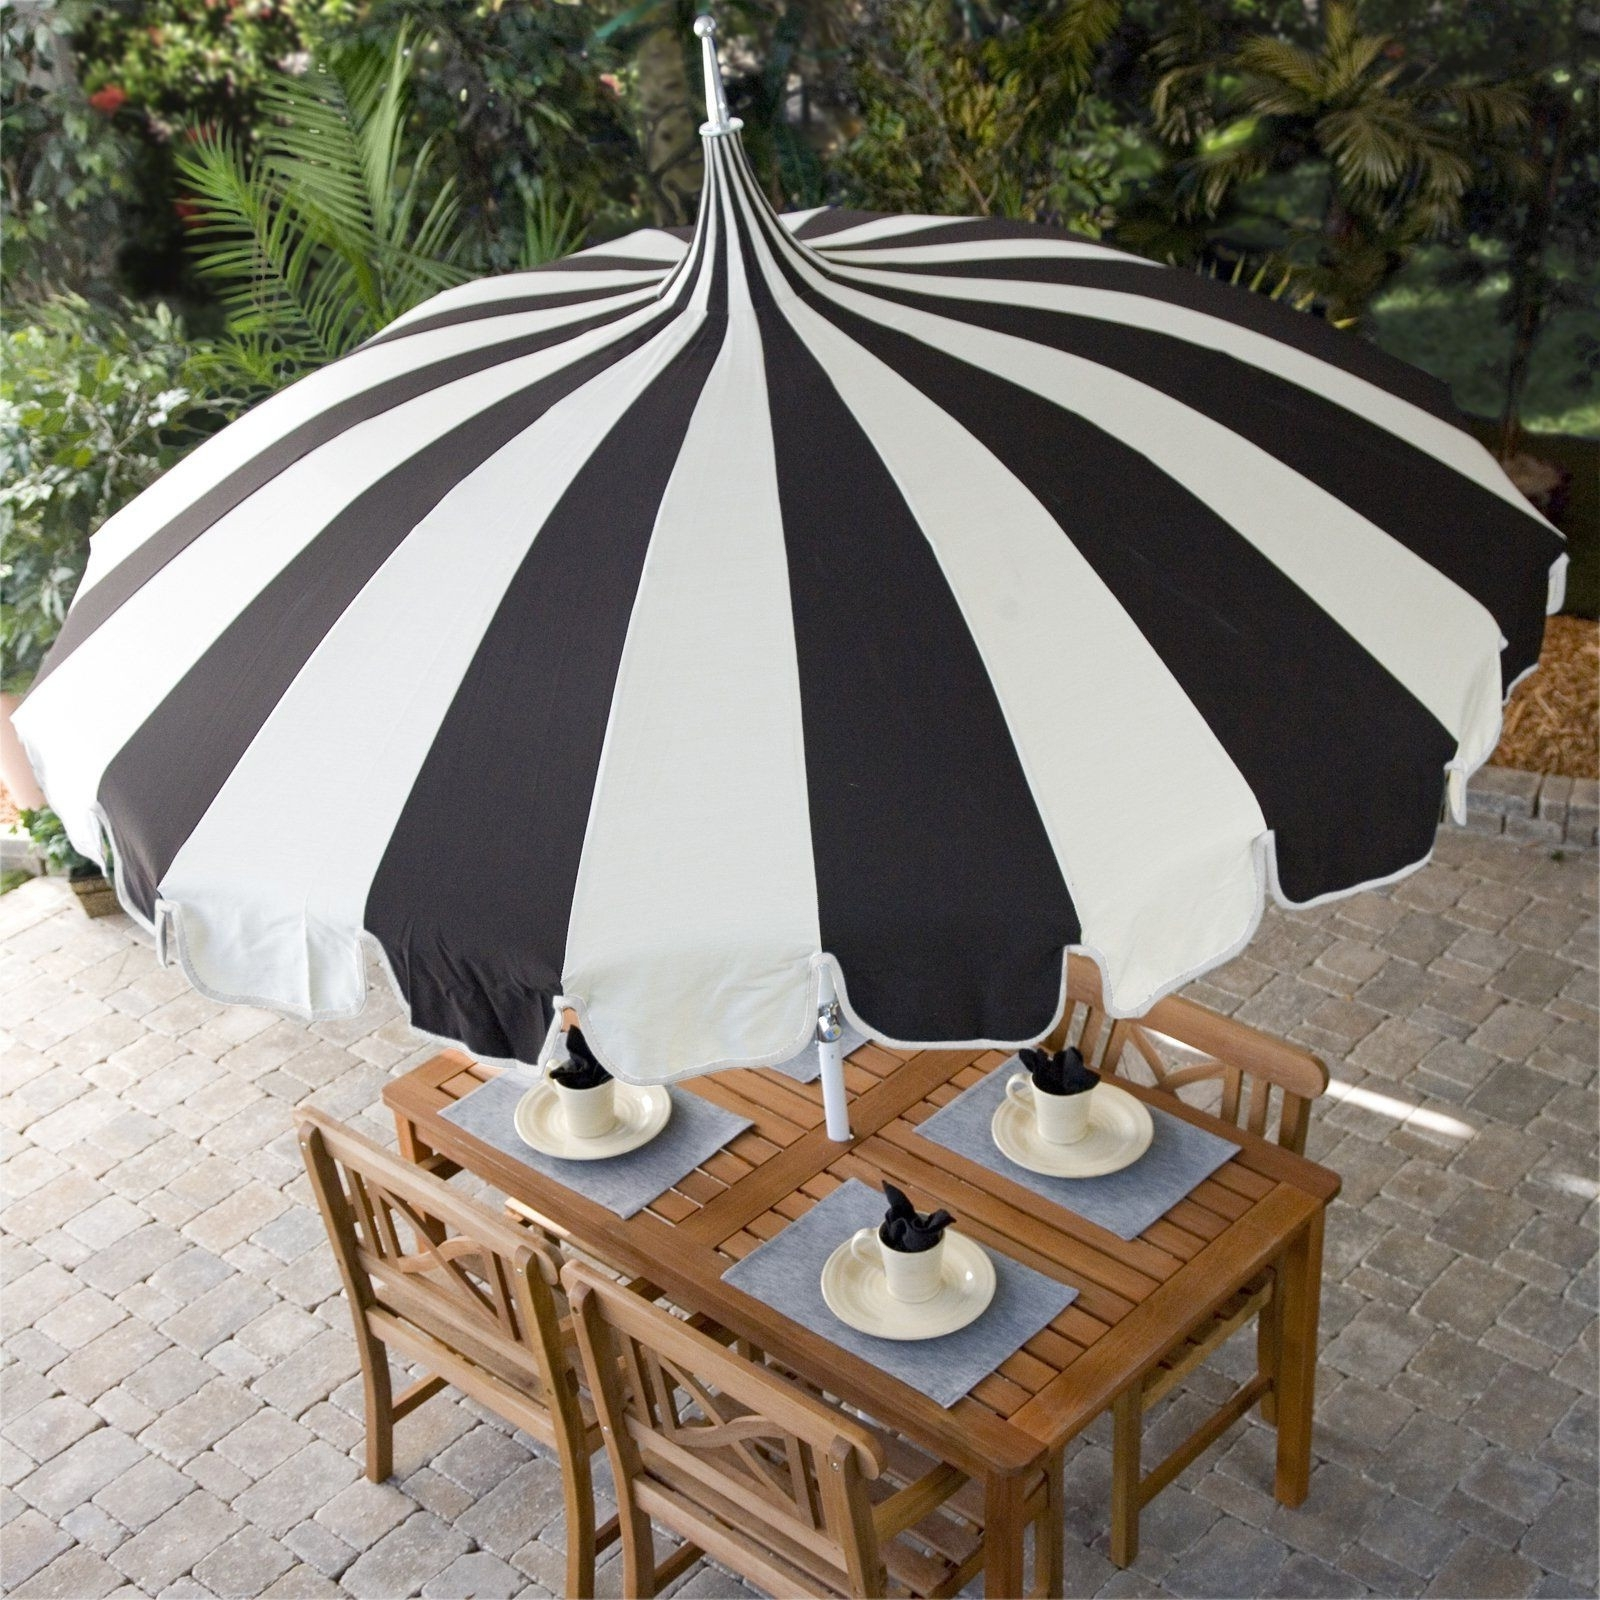 Lowes Patio Umbrella Best Of Have To Have It Pagoda 8 5 Ft Patio For Most Recent Patio Umbrellas At Lowes (View 6 of 20)